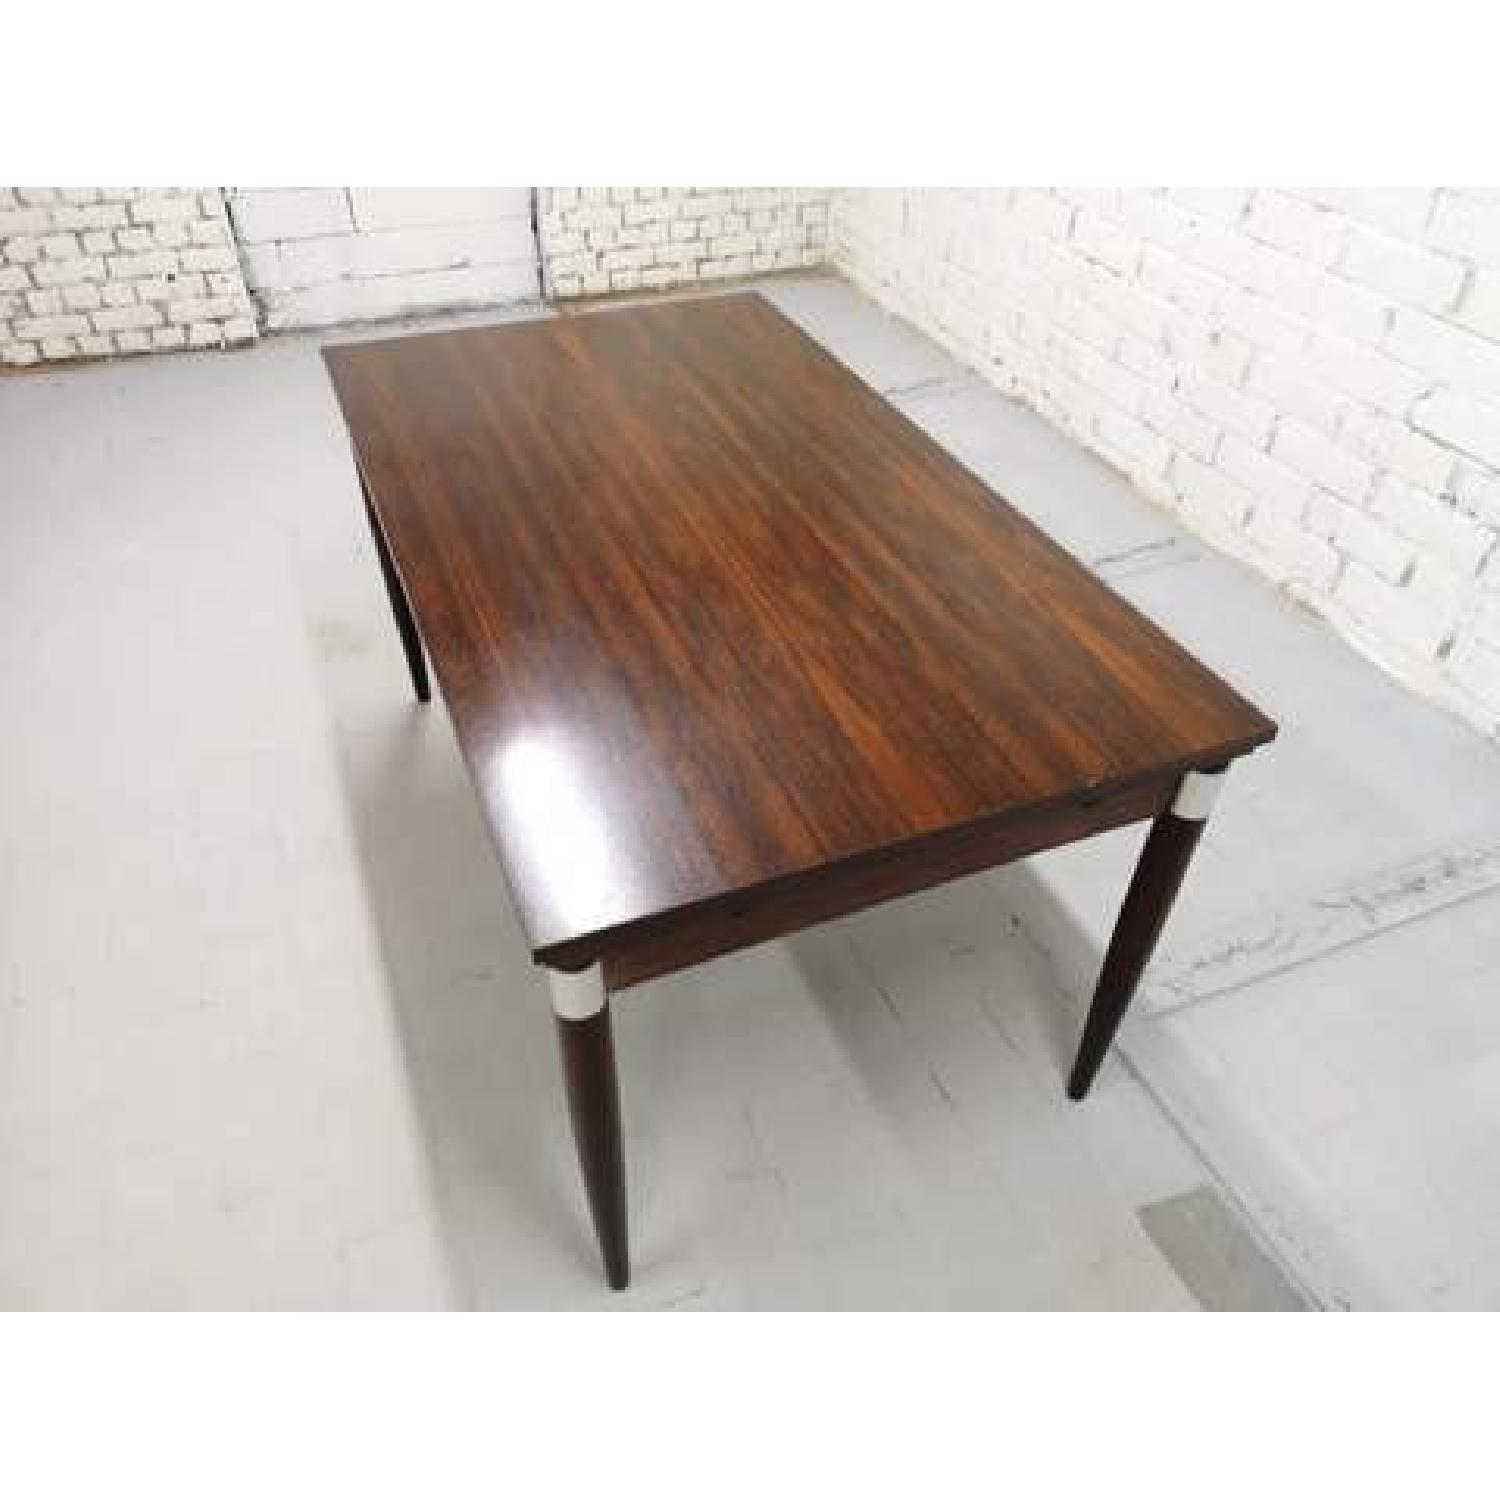 Mid-Century Modern Design Extendable Draw Leaf Dining Table - image-7